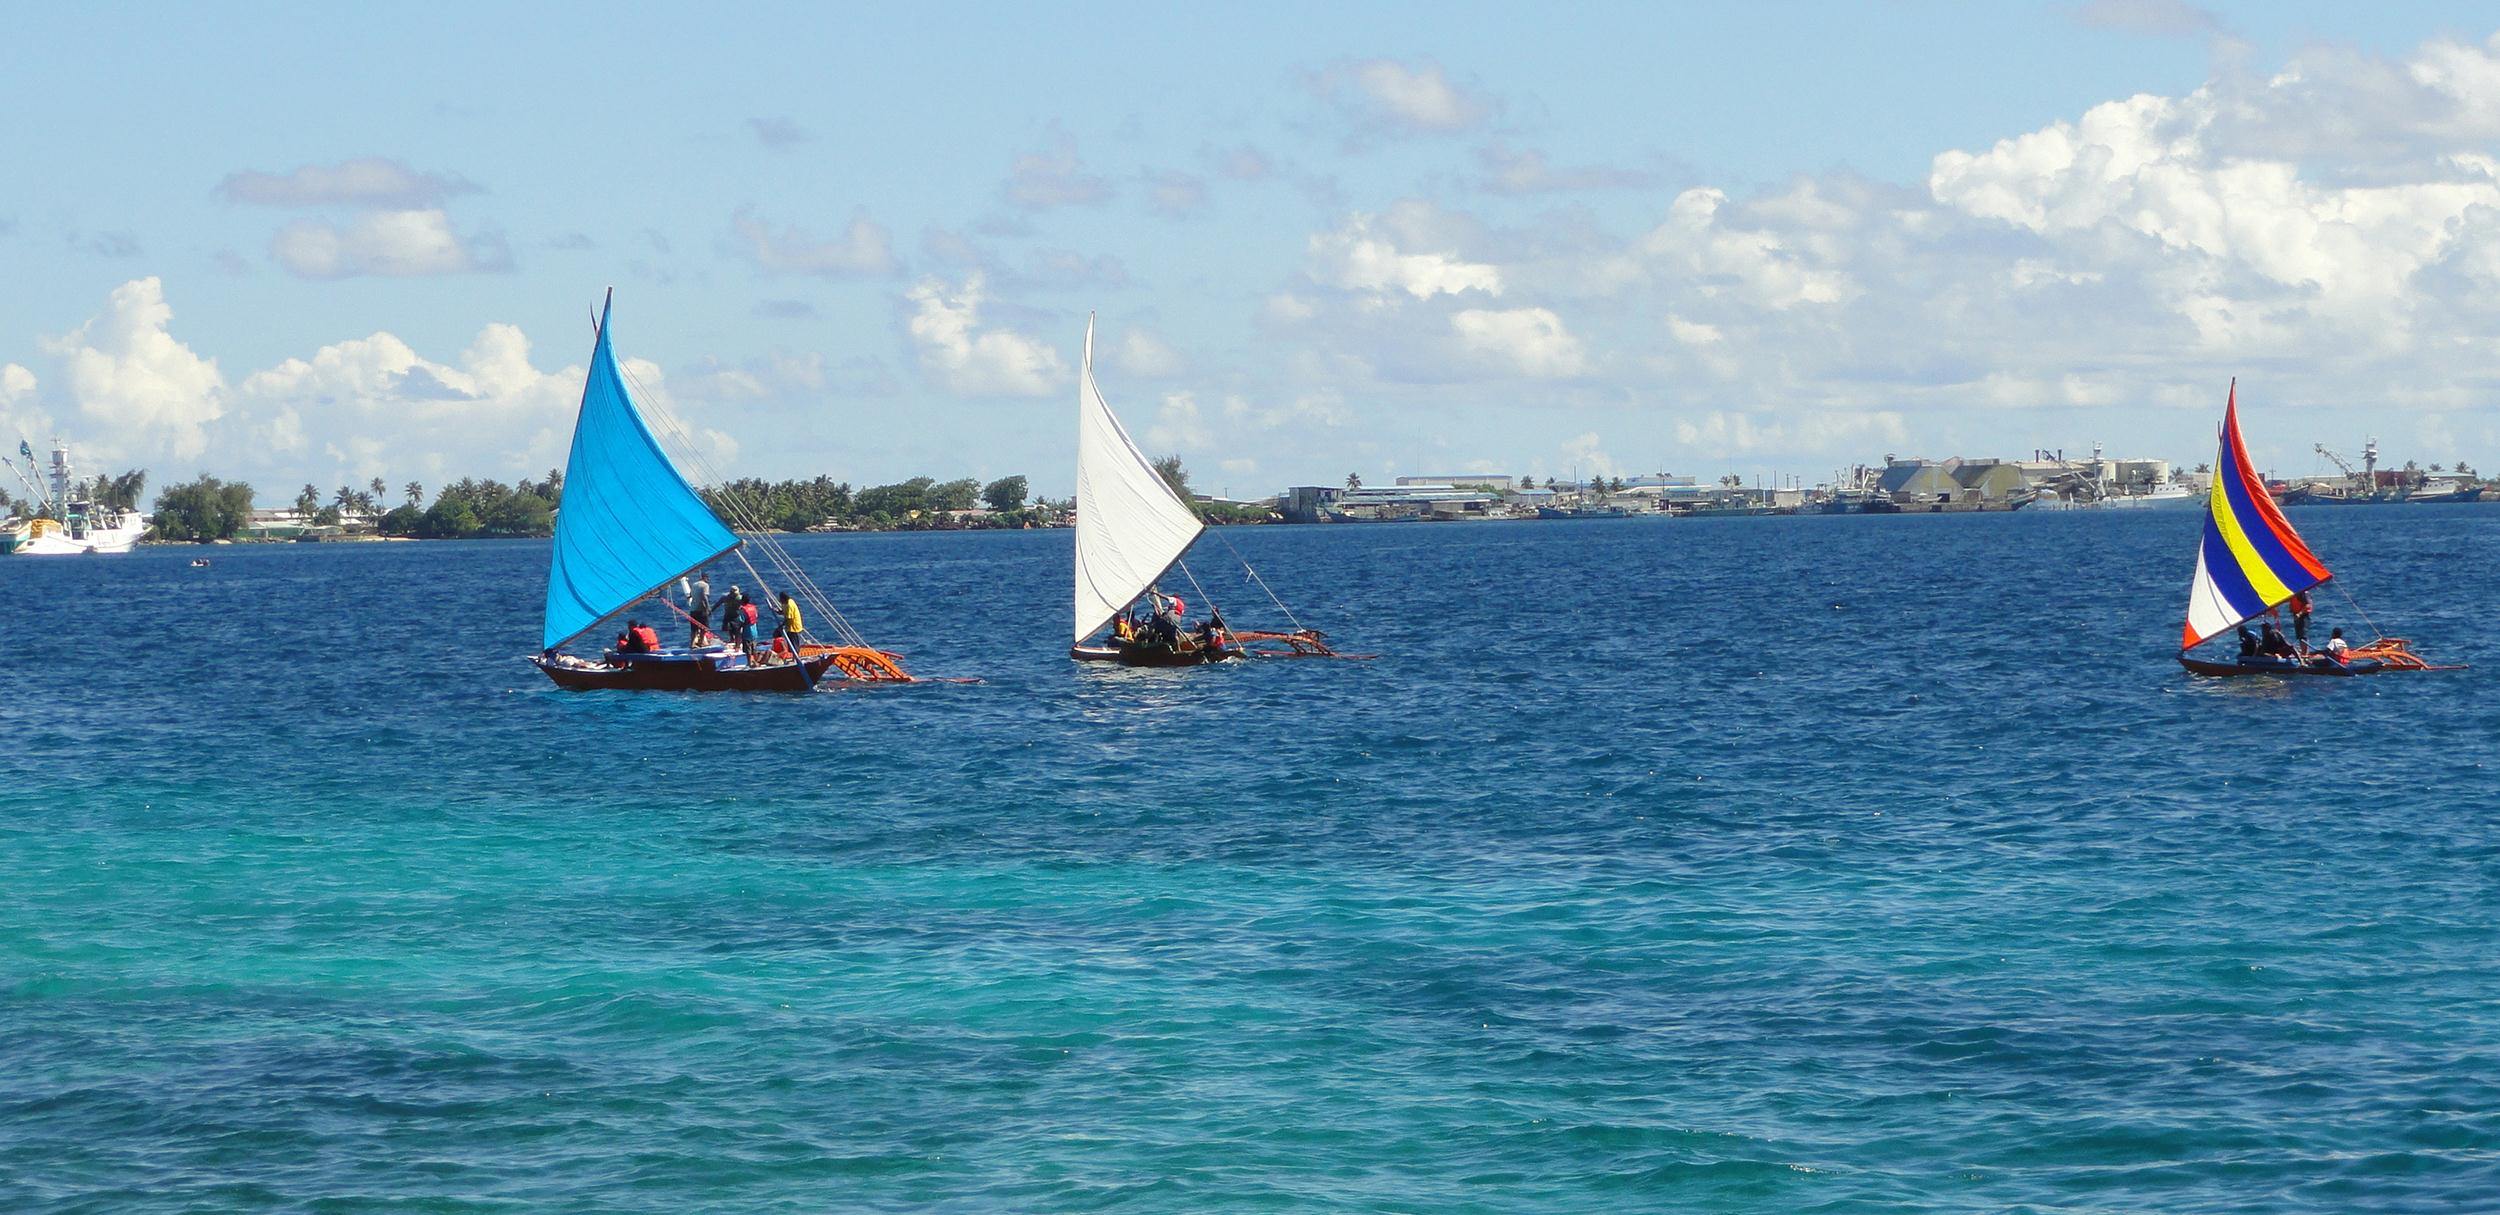 Image: Outrigger canoes in the Marshall Islands on Aug. 29, 2013.